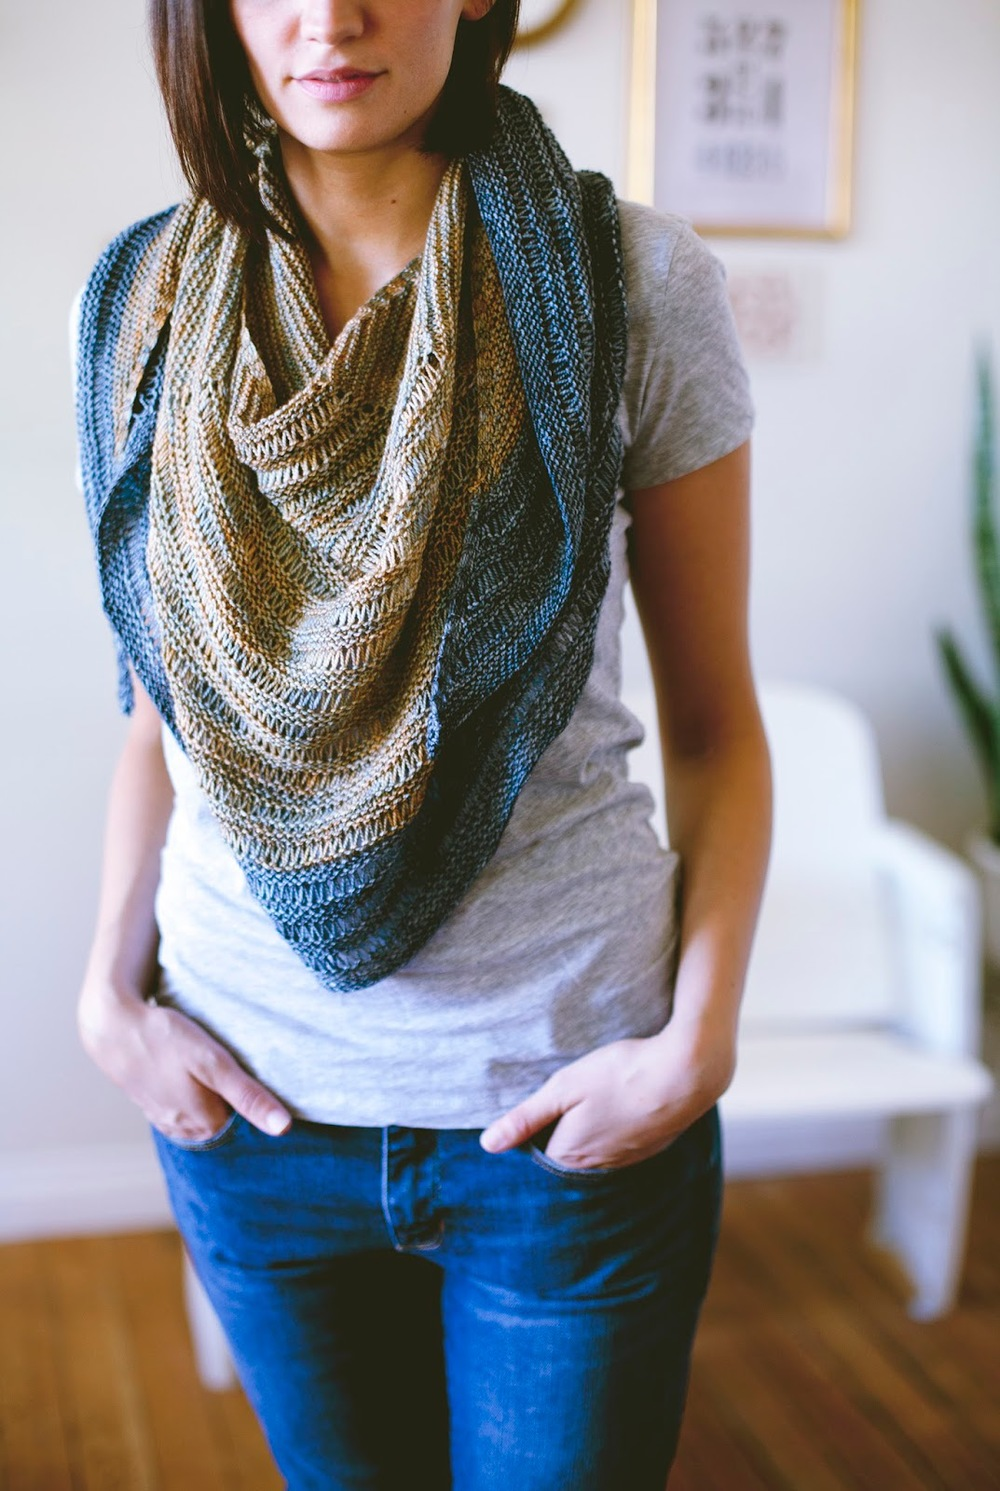 SEASONLESS | Mini Collection Volume One eBook. Laylow Shawl pattern by Shannon Cook. #seasonlessknits #knitting #book